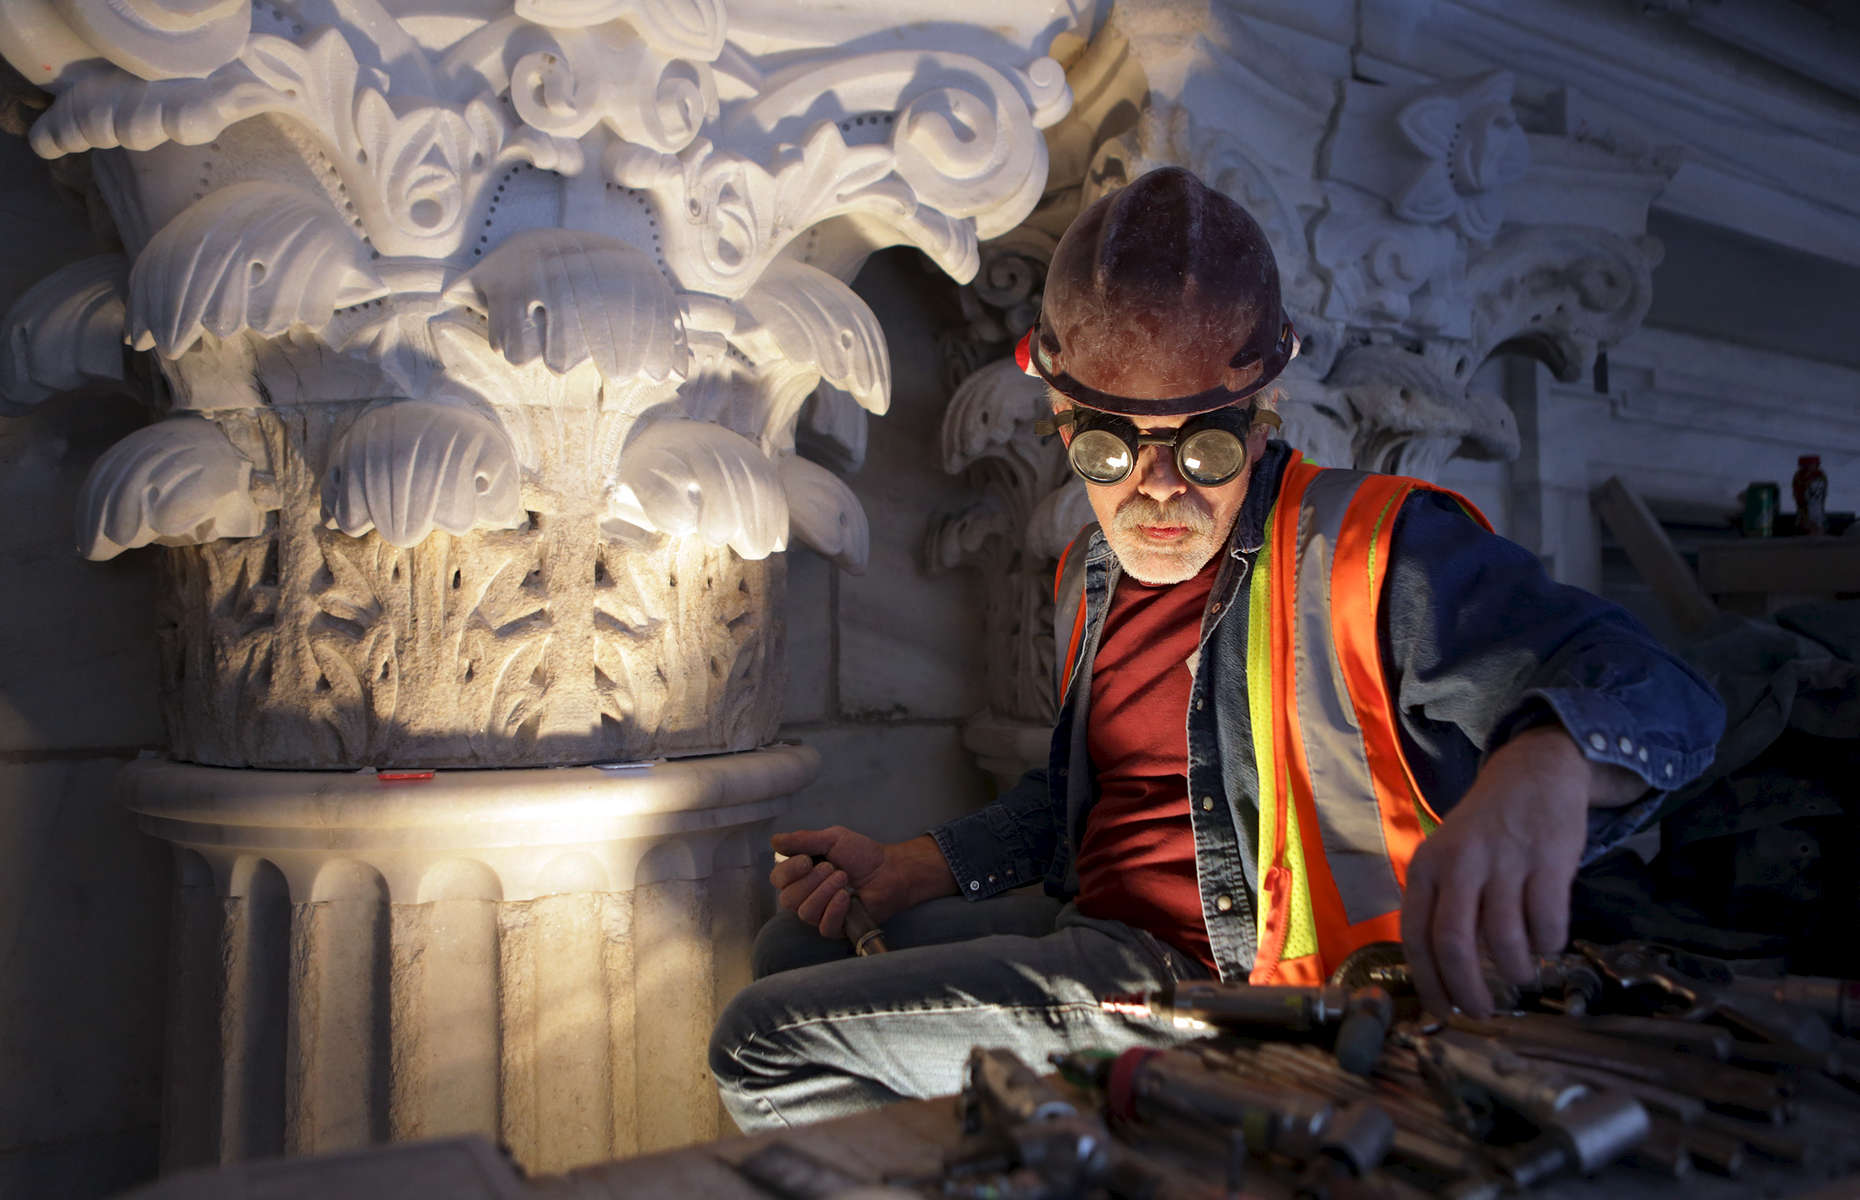 Master stone carver Mark Wickstrom selected a tool while working on exterior restoration at the state Capitol in St. Paul, Minn. Wickstrom, who has been working on the Capitol project for two years, trained as a master stone caver in France and Germany.